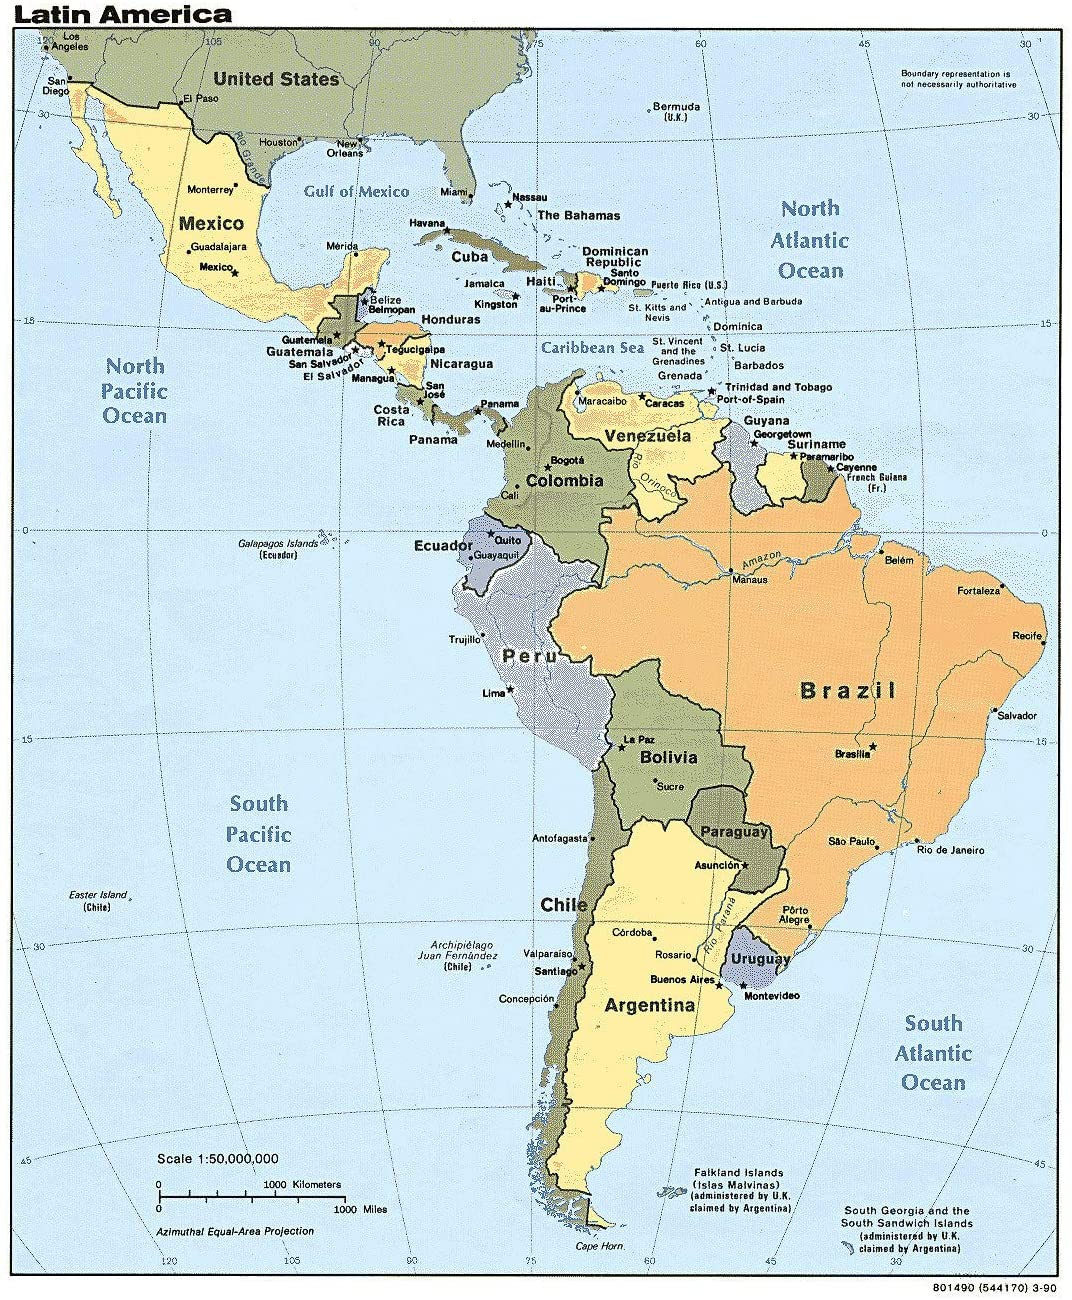 Central And South America Map Amazon.com: Home Comforts Map   Central America Countries in Latin